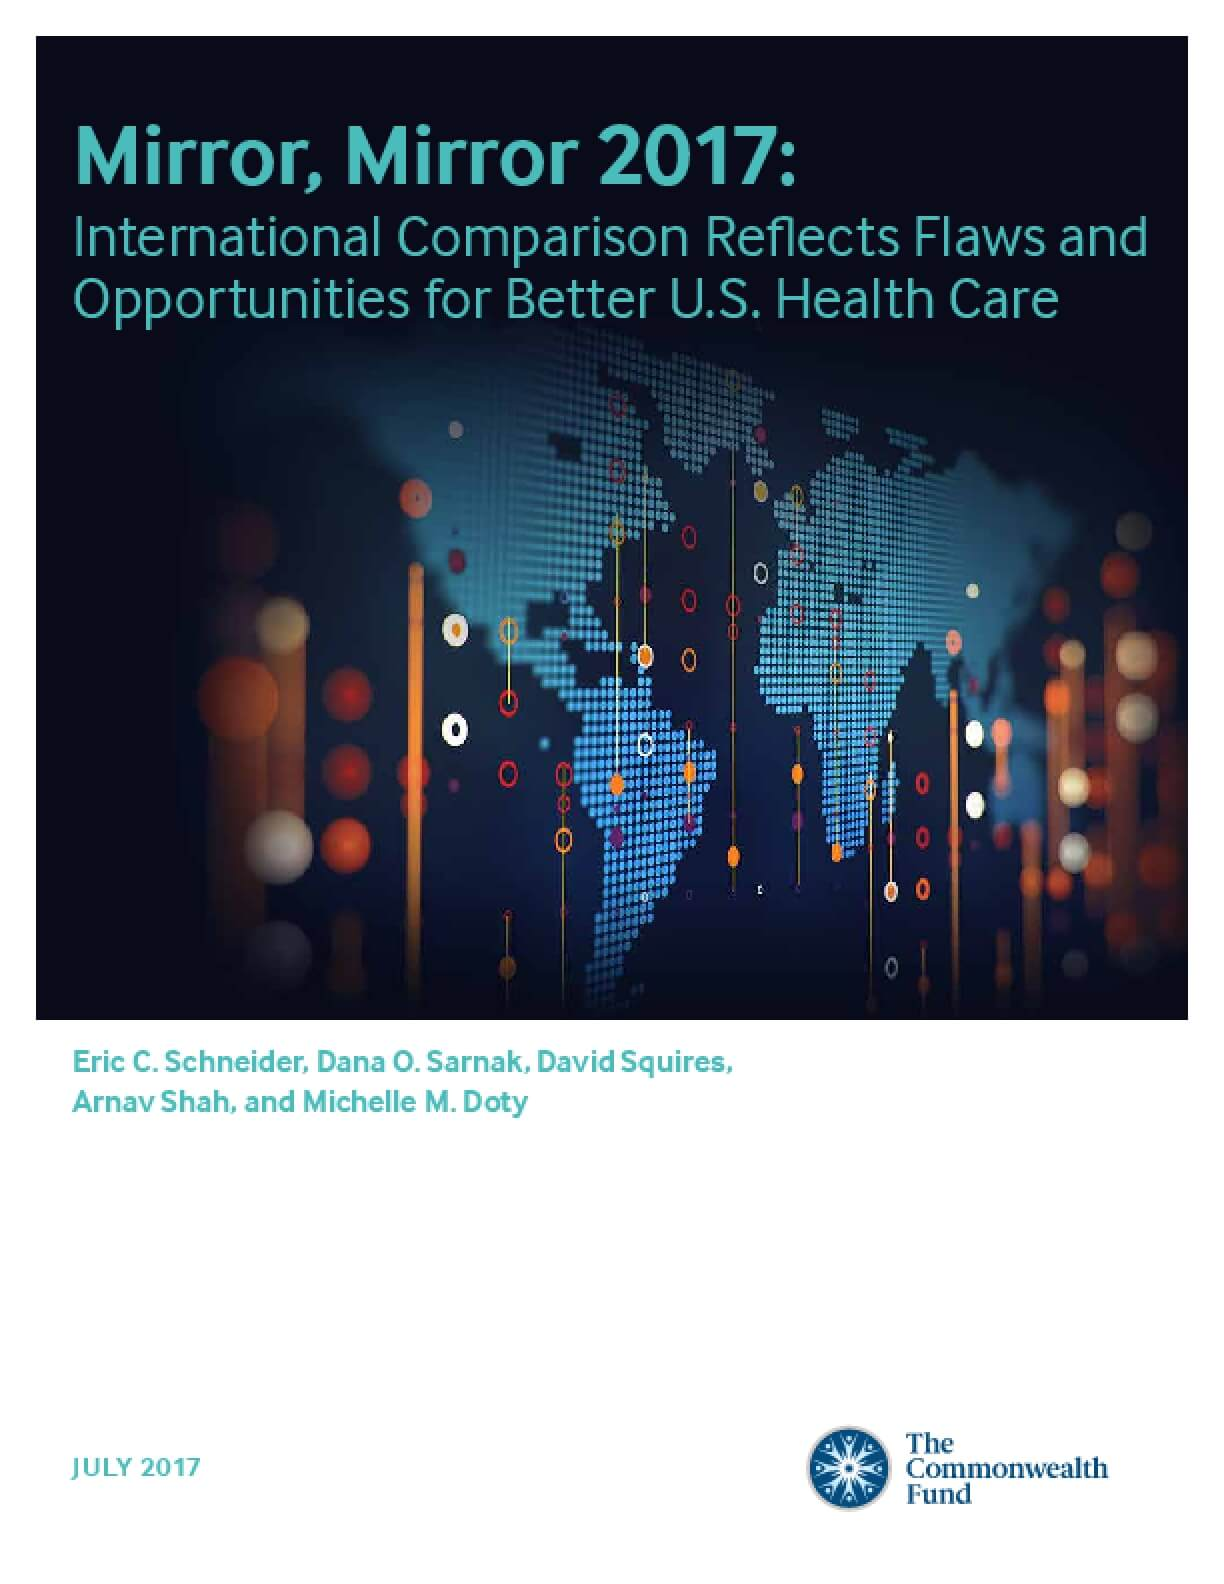 Mirror, Mirror 2017: International Comparison Reflects Flaws and Opportunities for Better U.S. Health Care